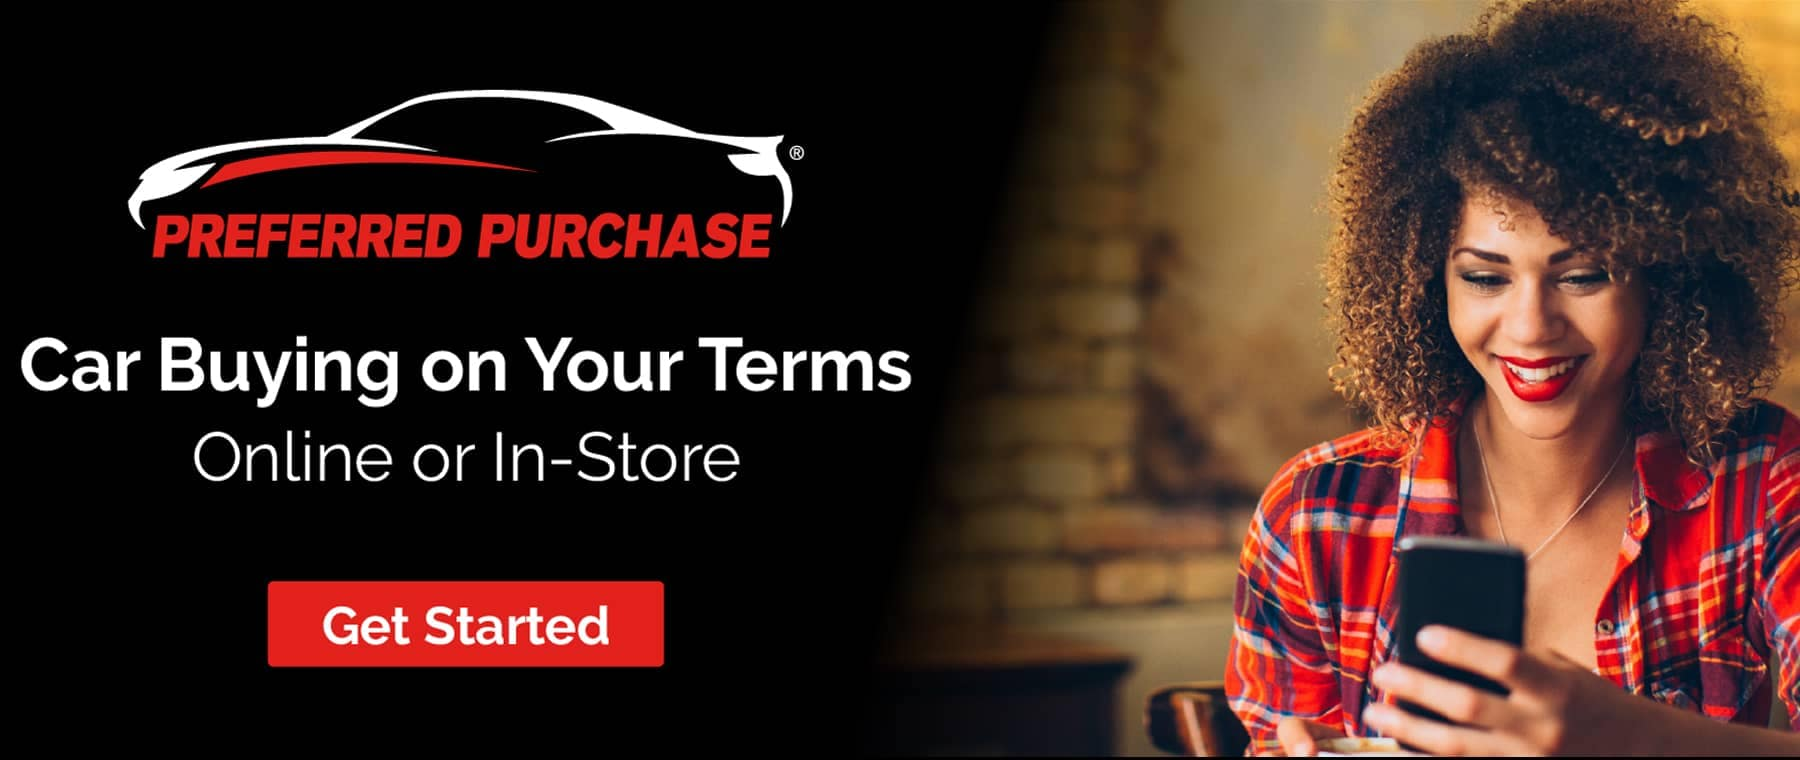 Penske Preferred shoponline banner with woman using a phone